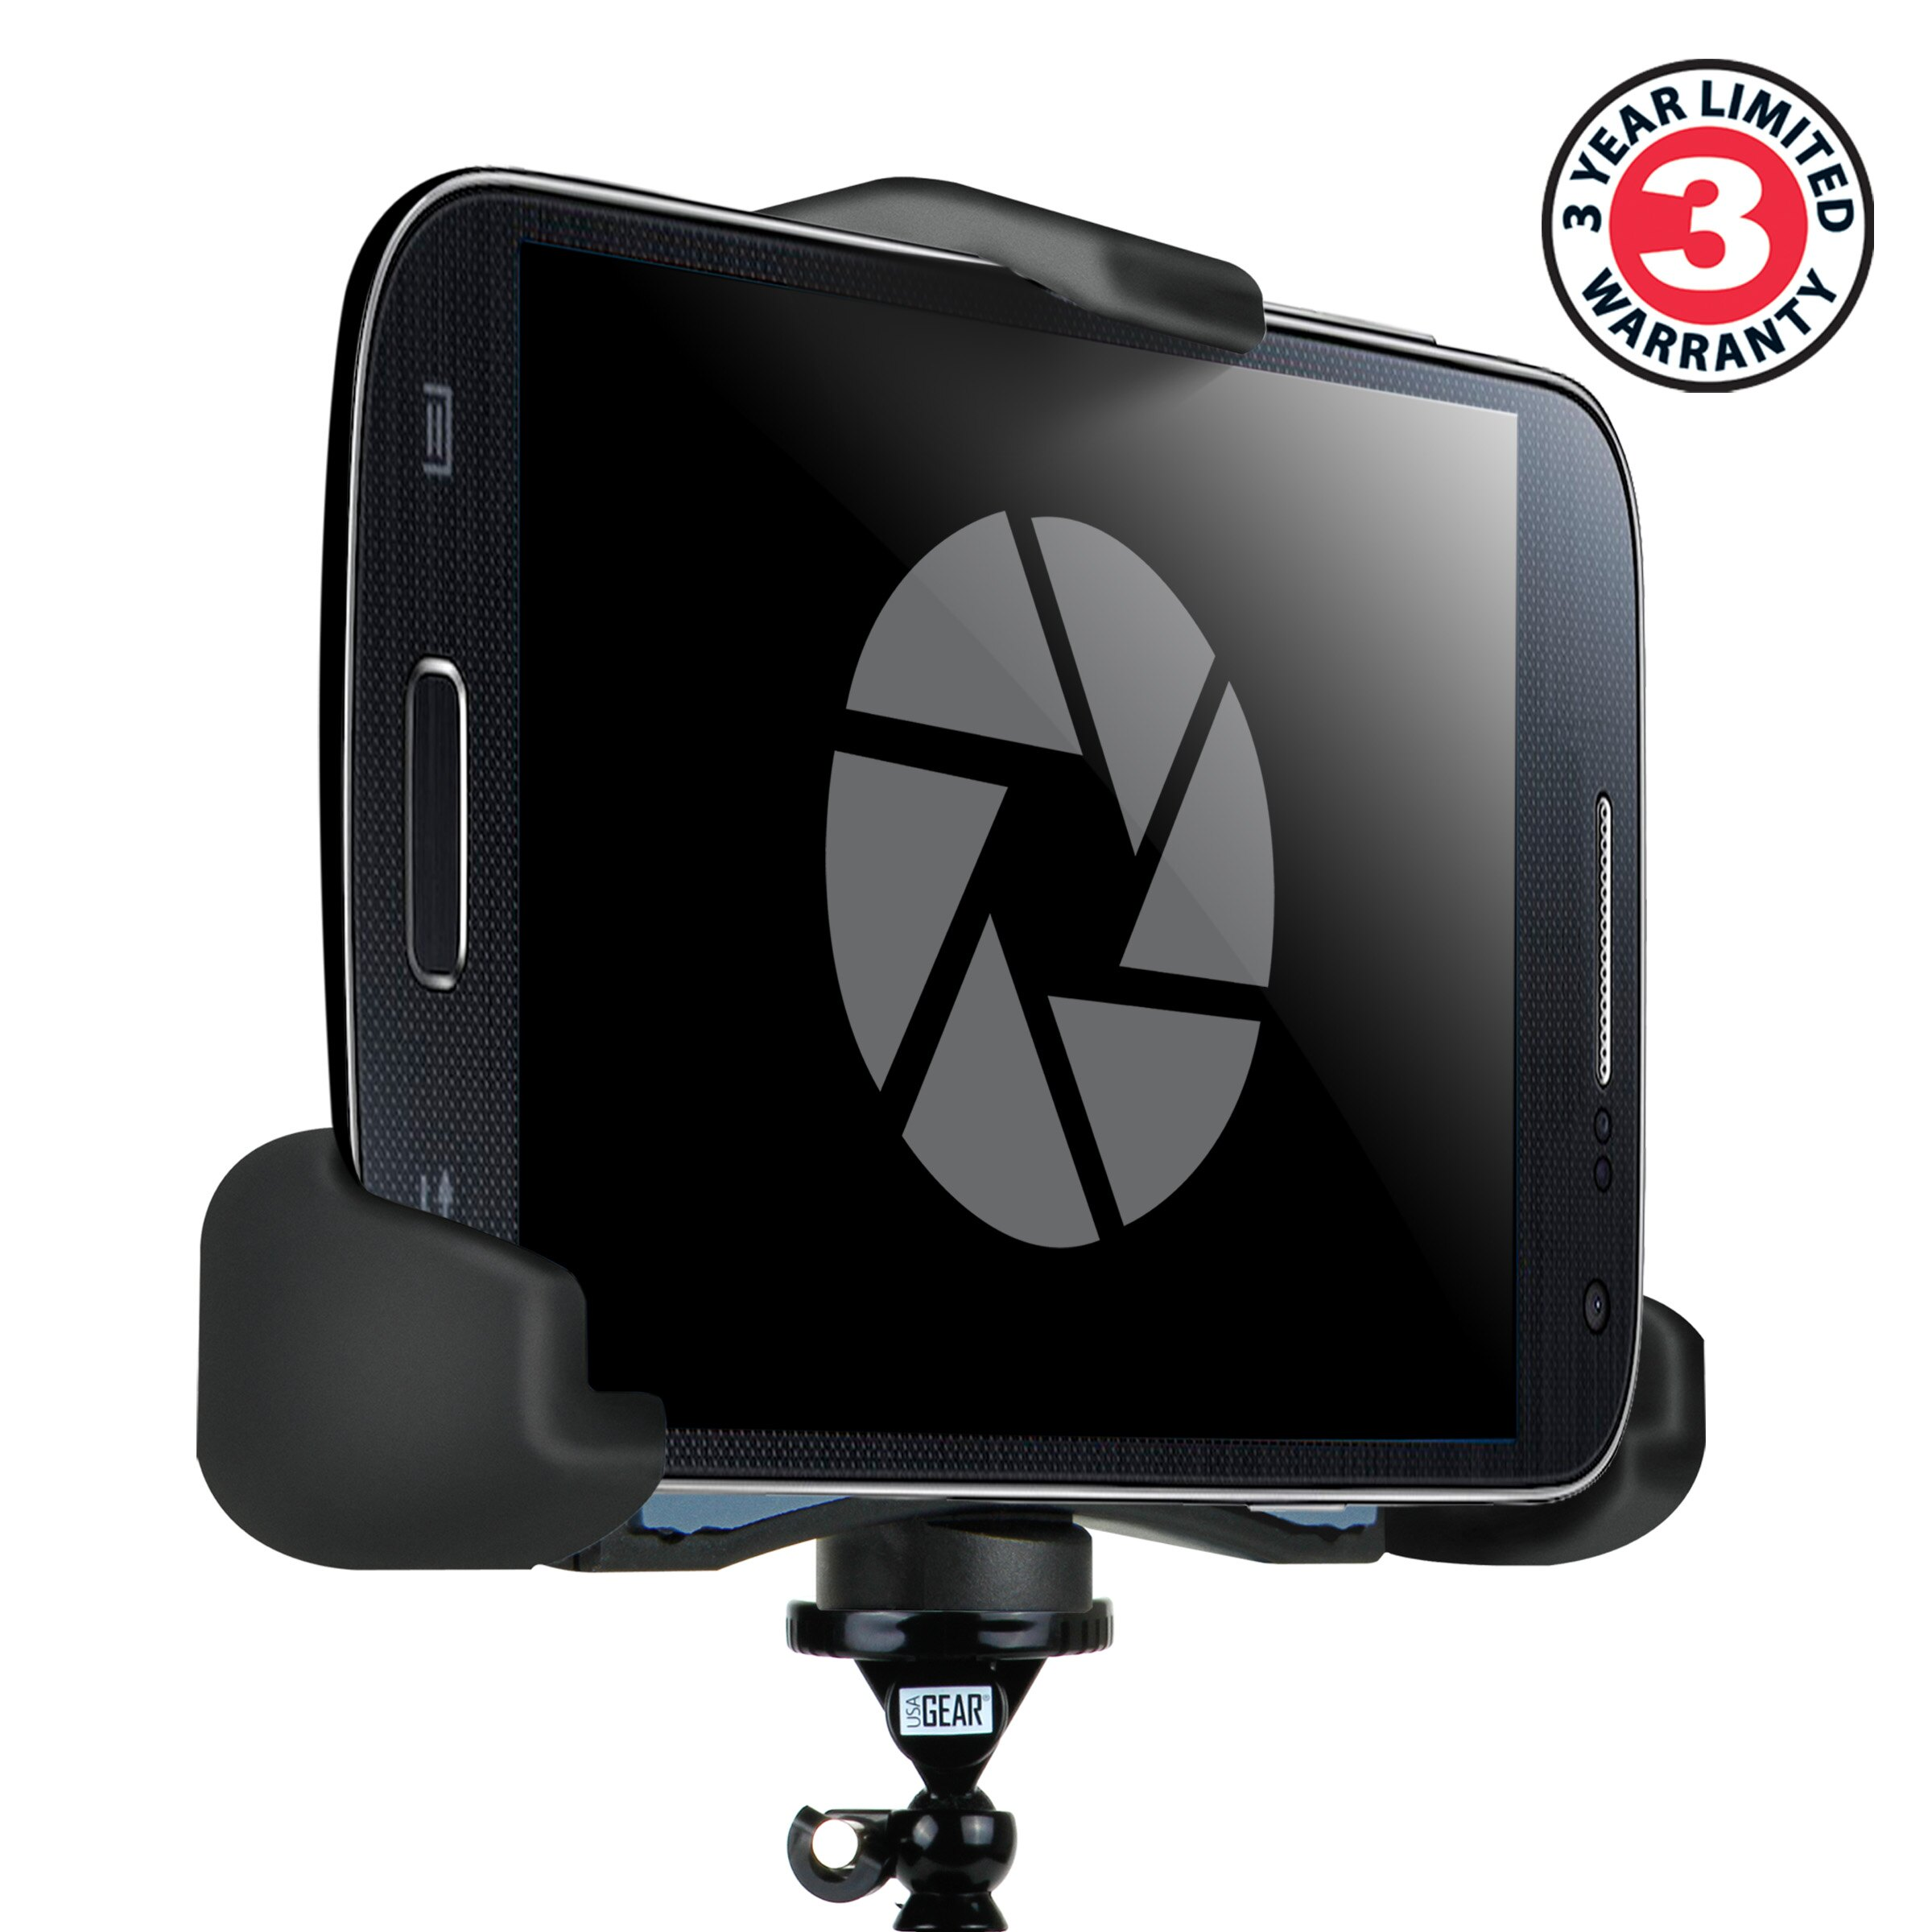 Smartphone Action Mount Adapter for Tripods with Secure J-Hook Attachment  by USA Gear - Works With Apple , HTC , Huawei , LG , Motorola , Samsung and